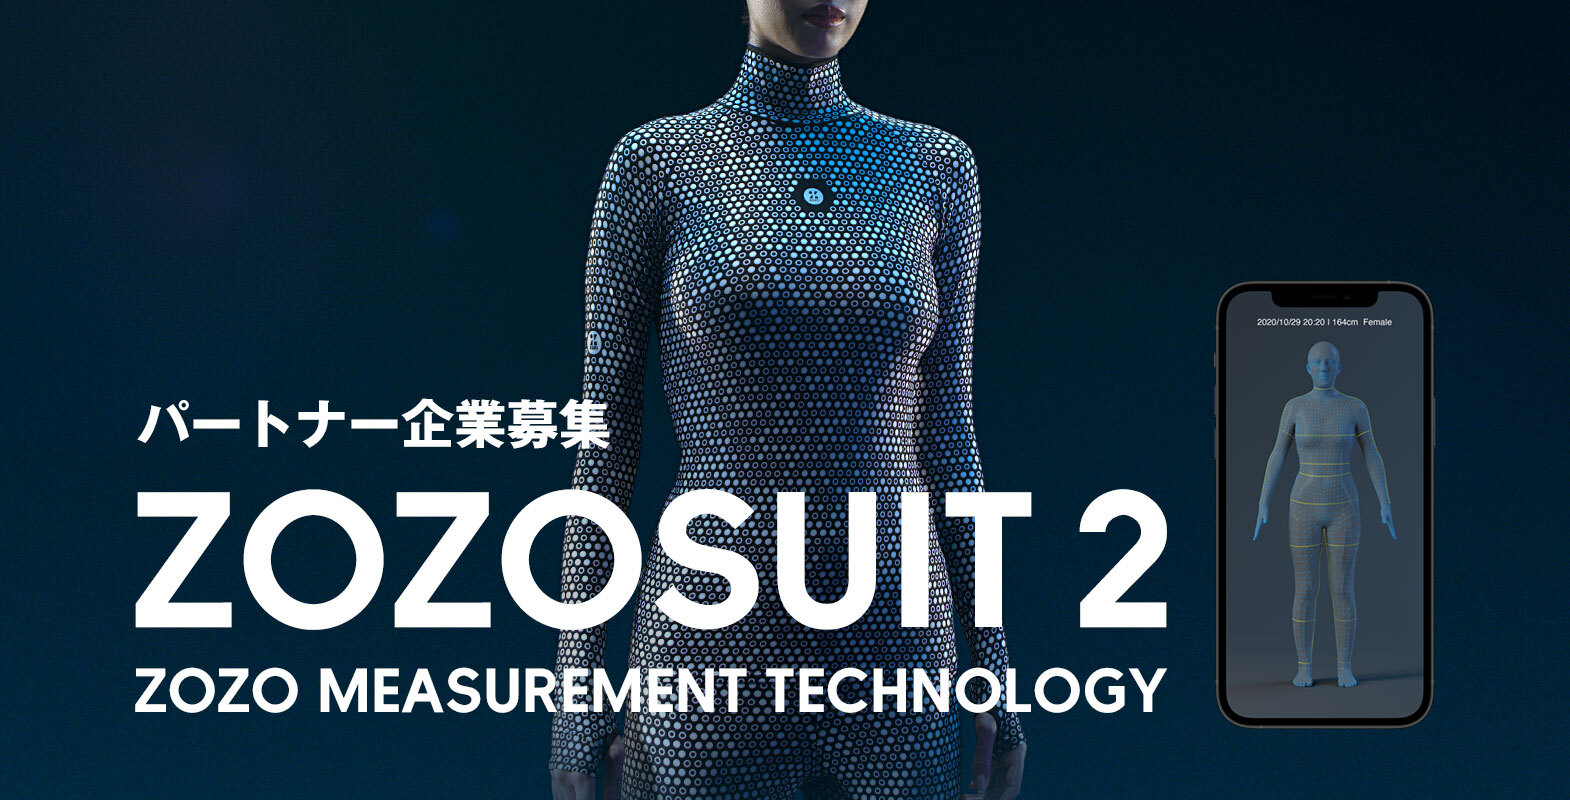 ZOZO MEASUREMENT TECHNOLOGY